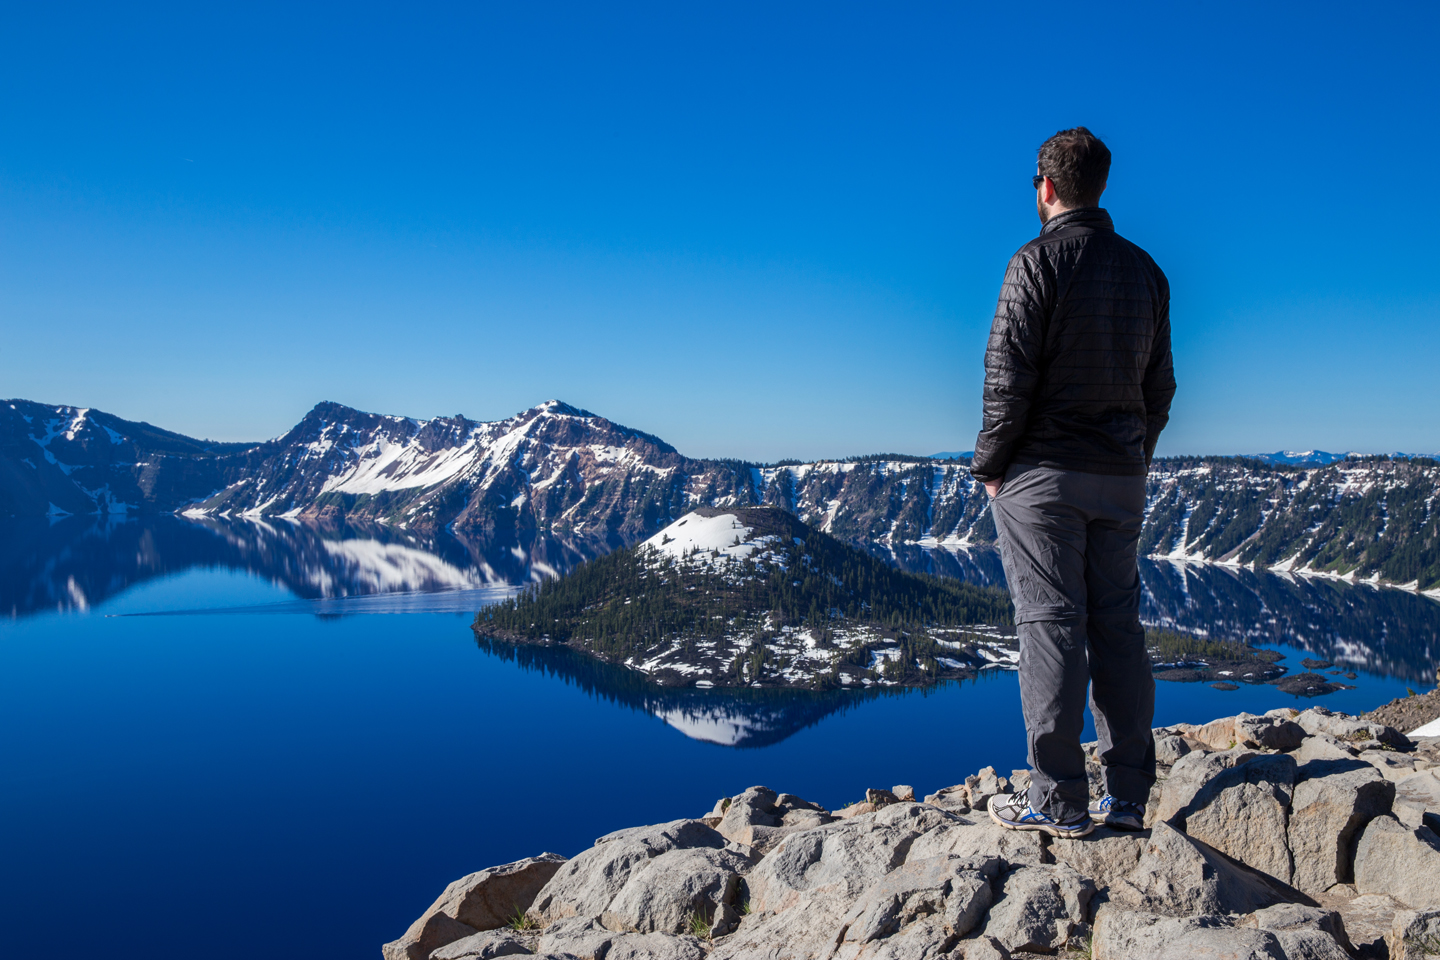 crater-lake-sunrise-wizard-brian